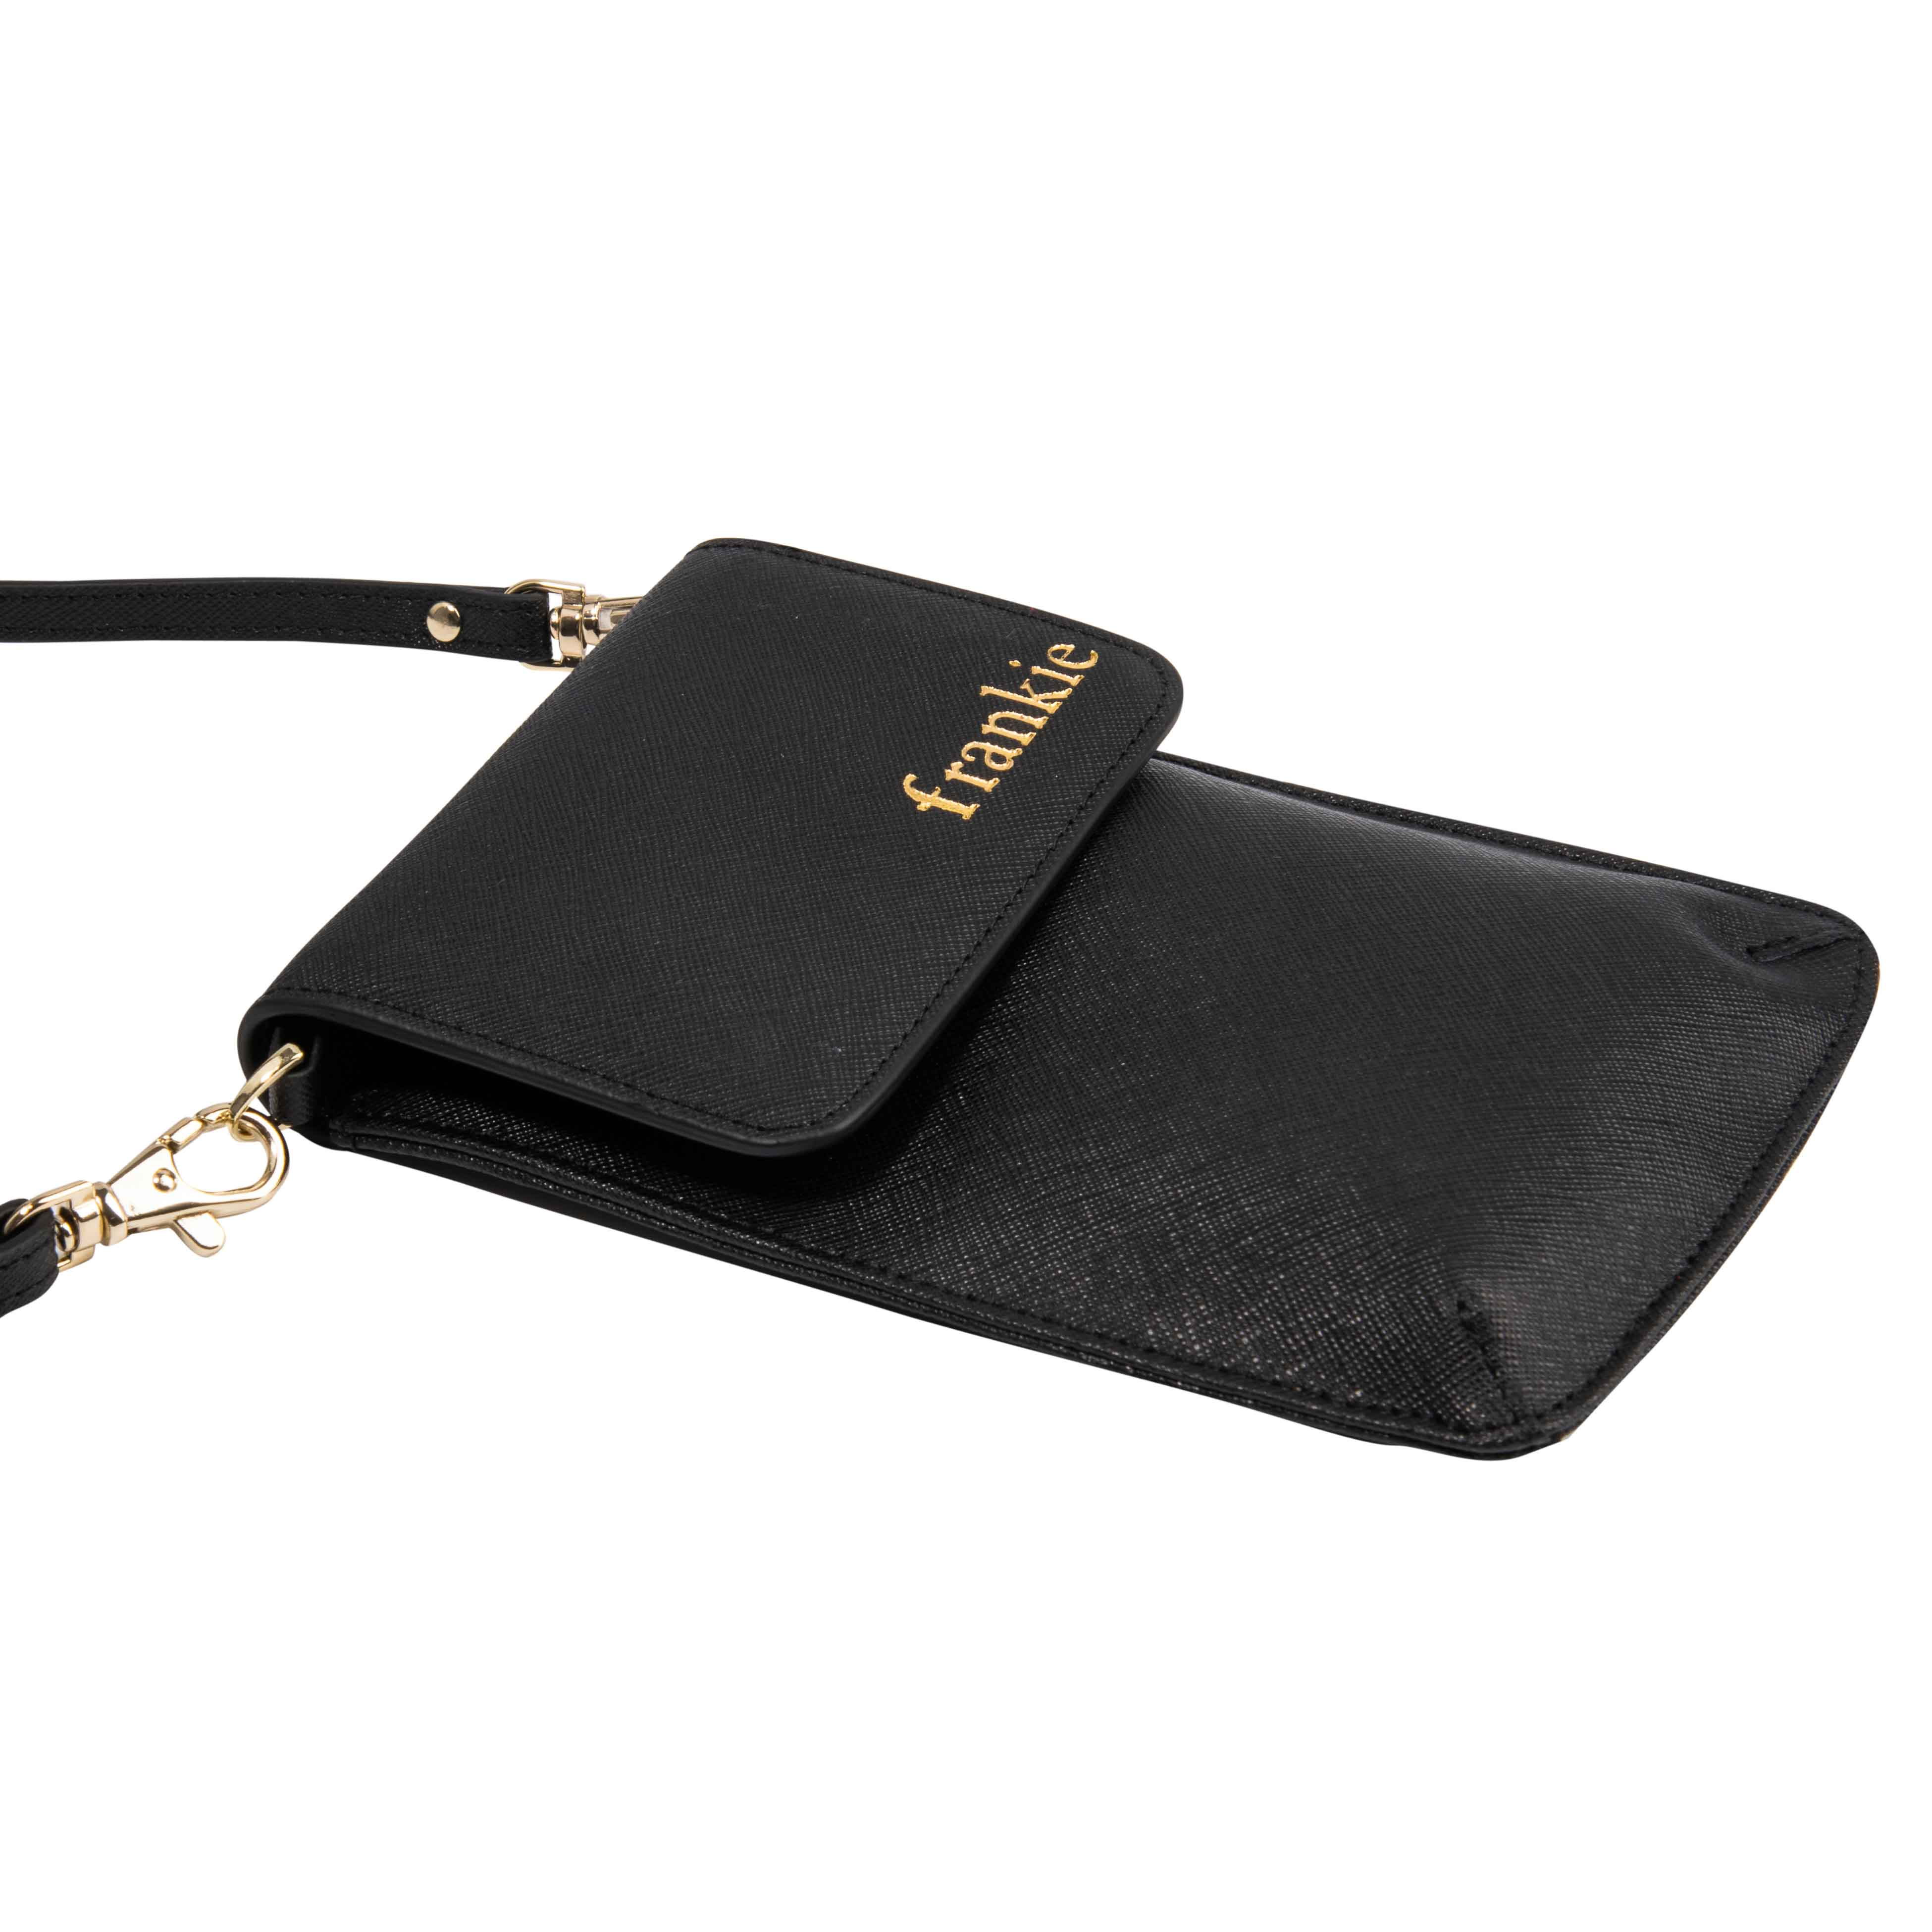 Phone Bag in Black Saffiano Leather